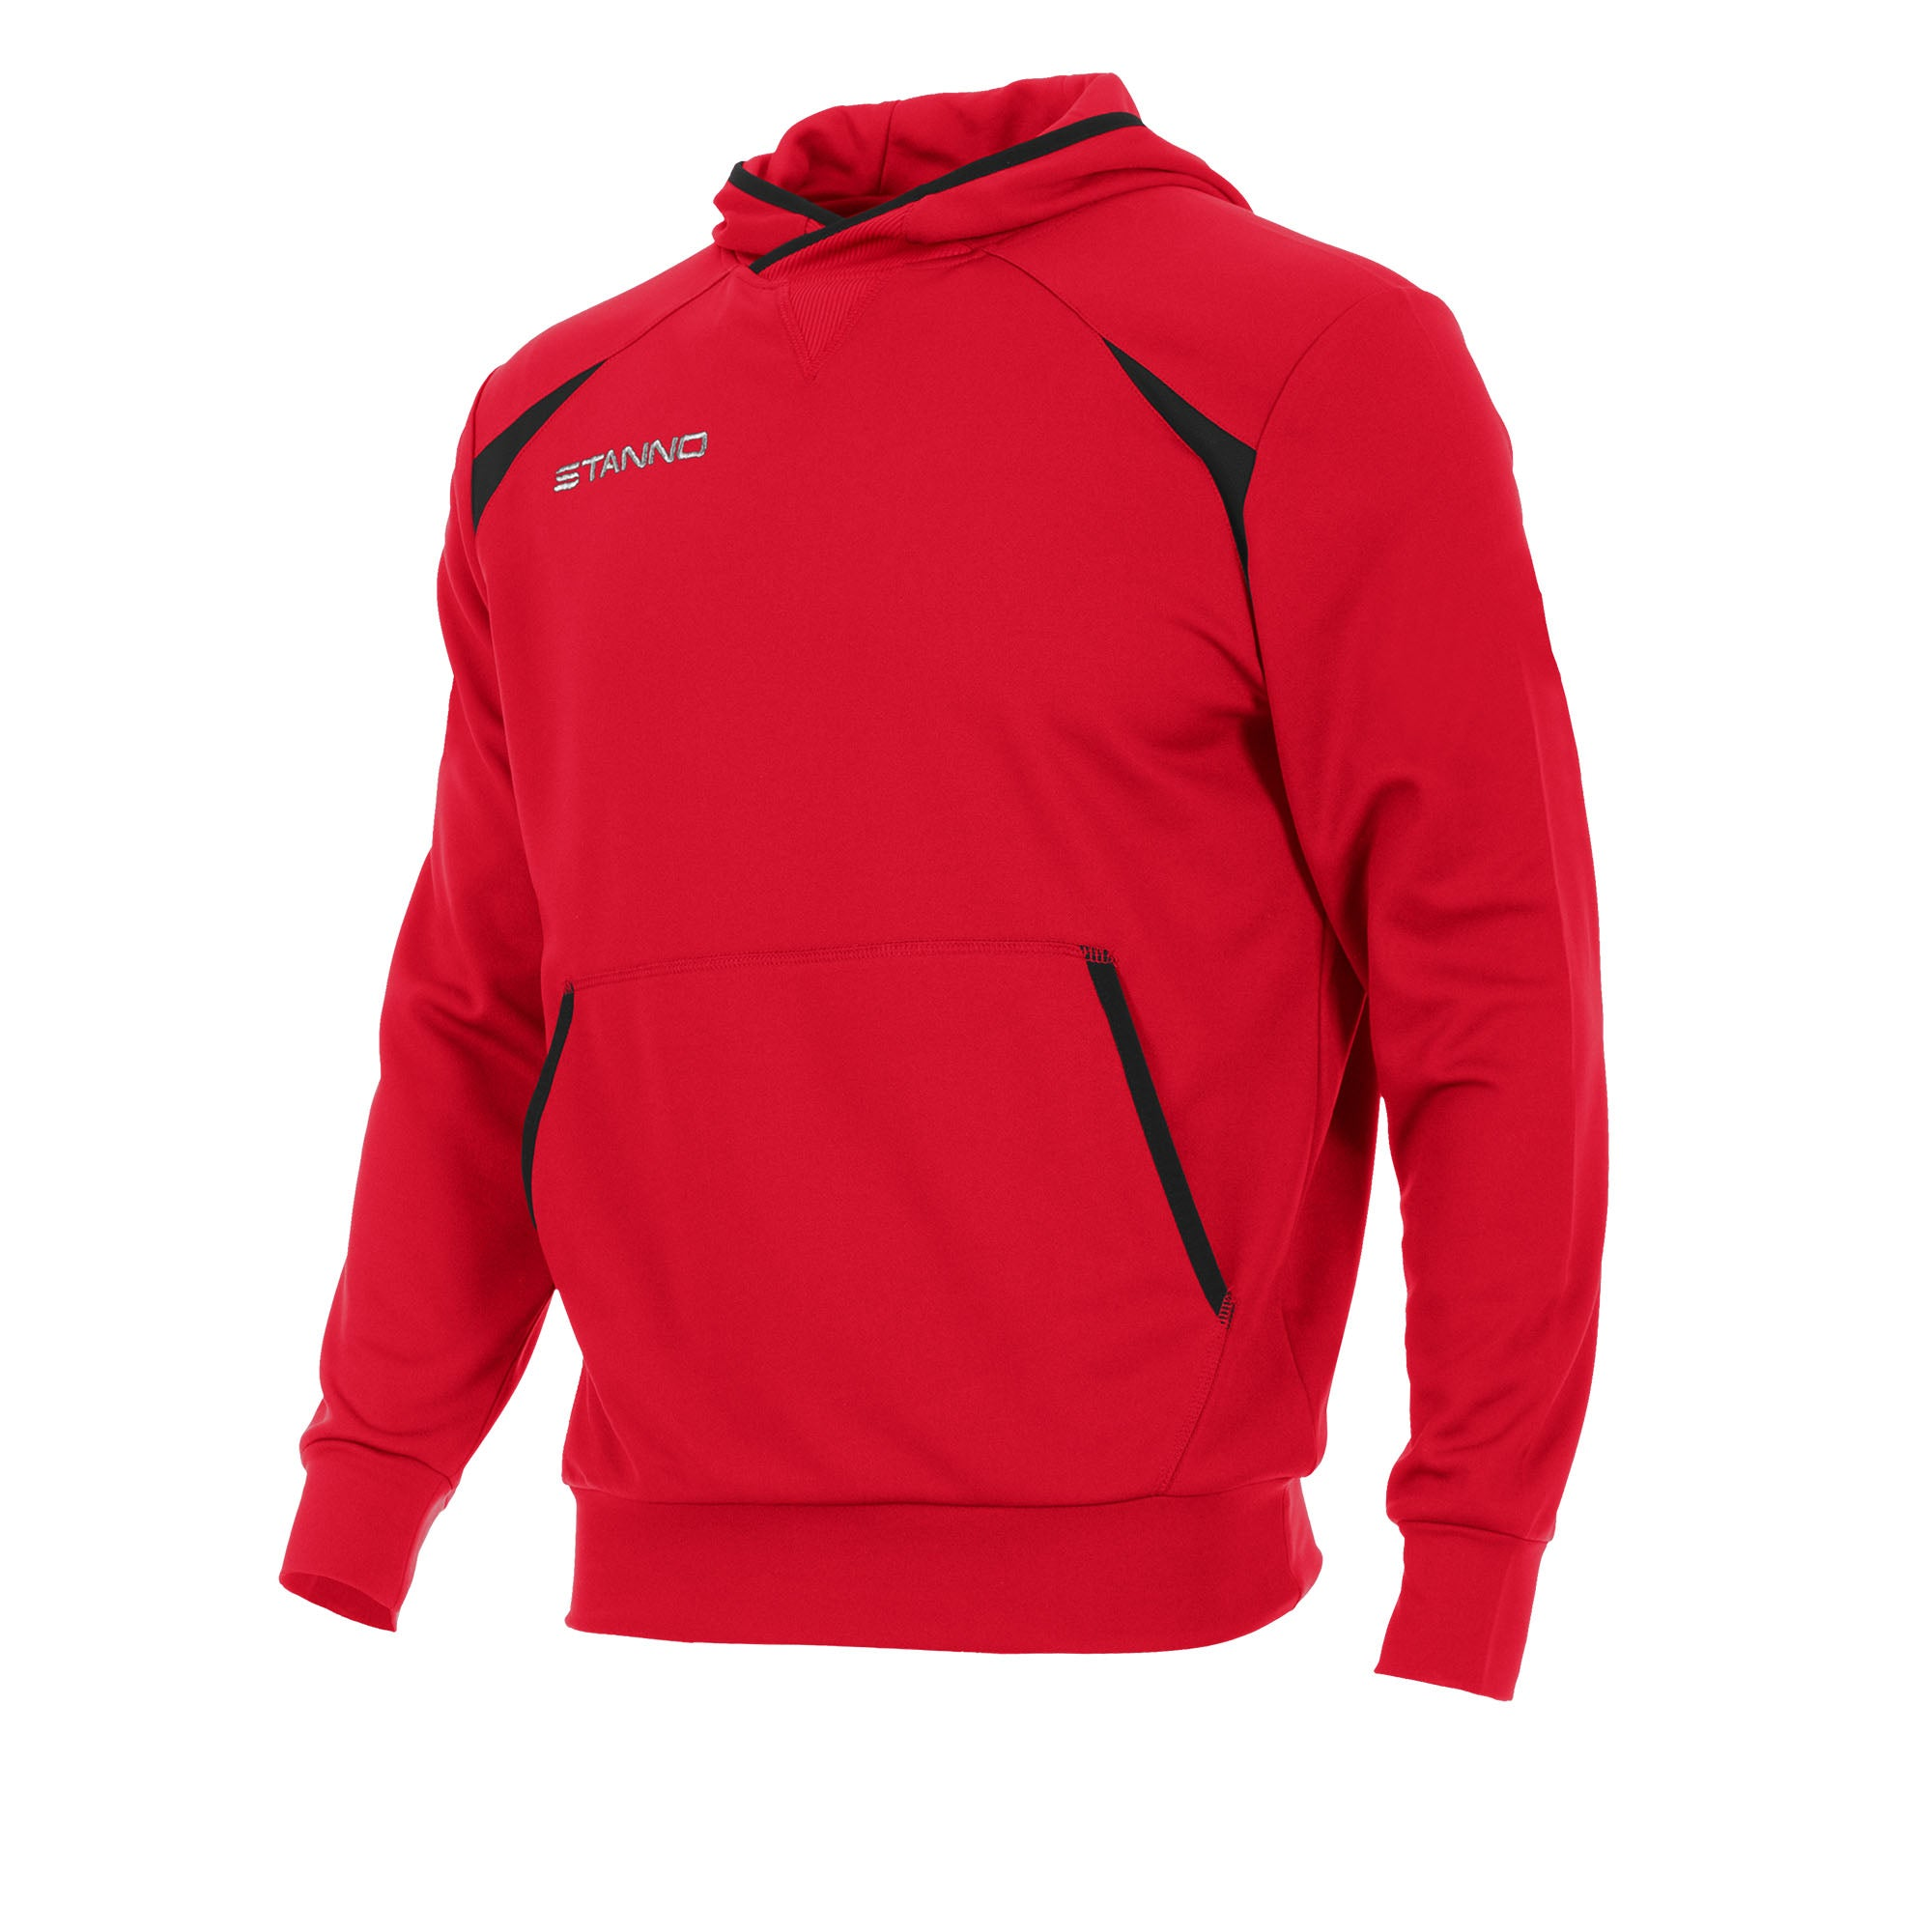 Front of Stanno Centro hooded sweat in red with black contrast decal.